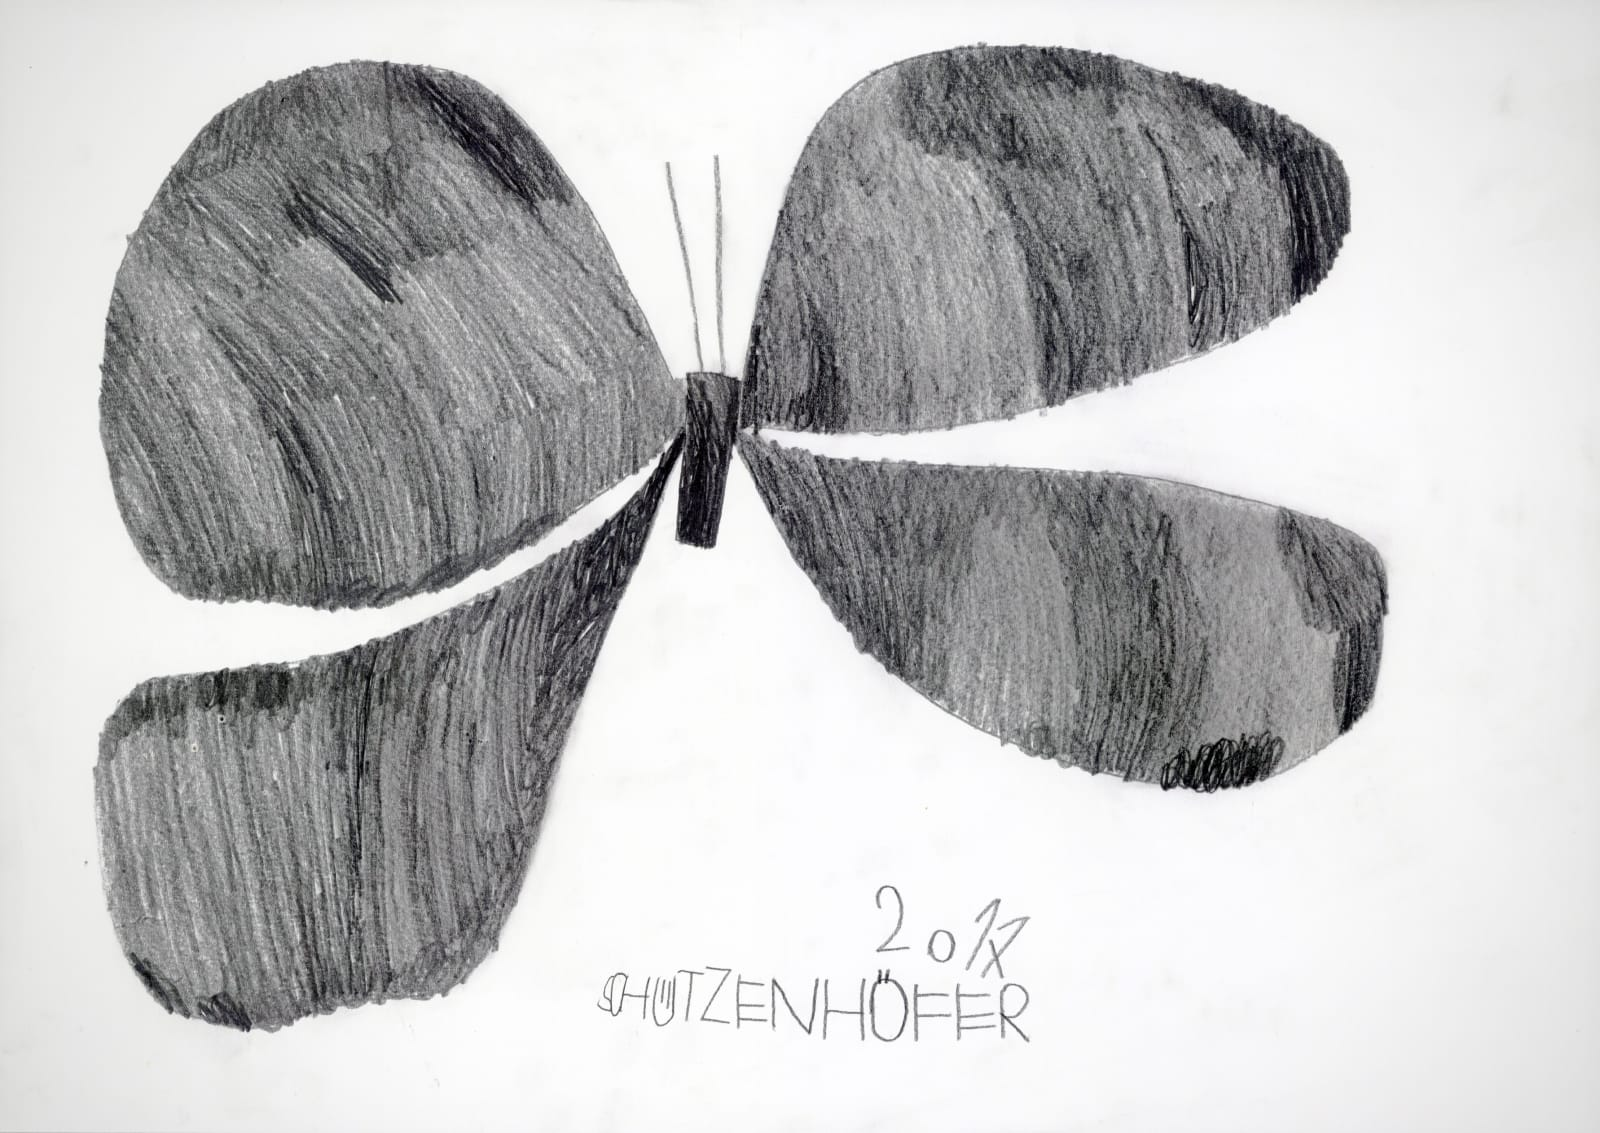 Butterfly, 2017 Graphite on paper 16.5 x 23.4 in. (42 x 59.5 cm.) (GSG 110) $6,500